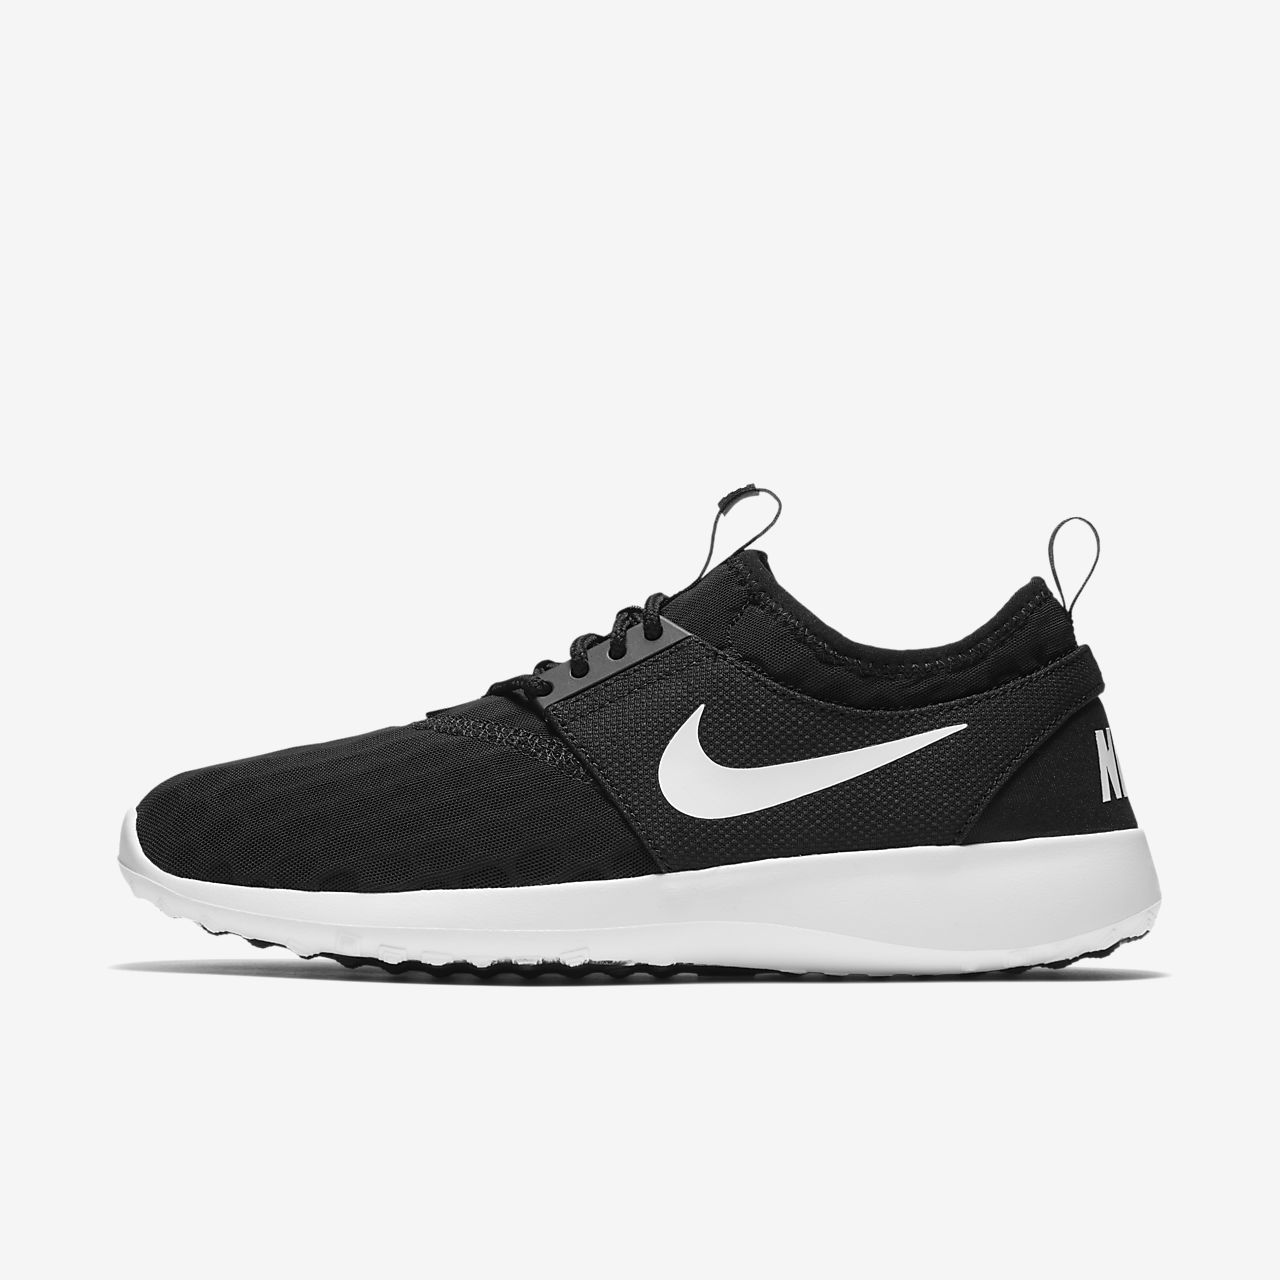 b7f23ad4e0c Low Resolution Nike Juvenate Women s Shoe Nike Juvenate Women s Shoe